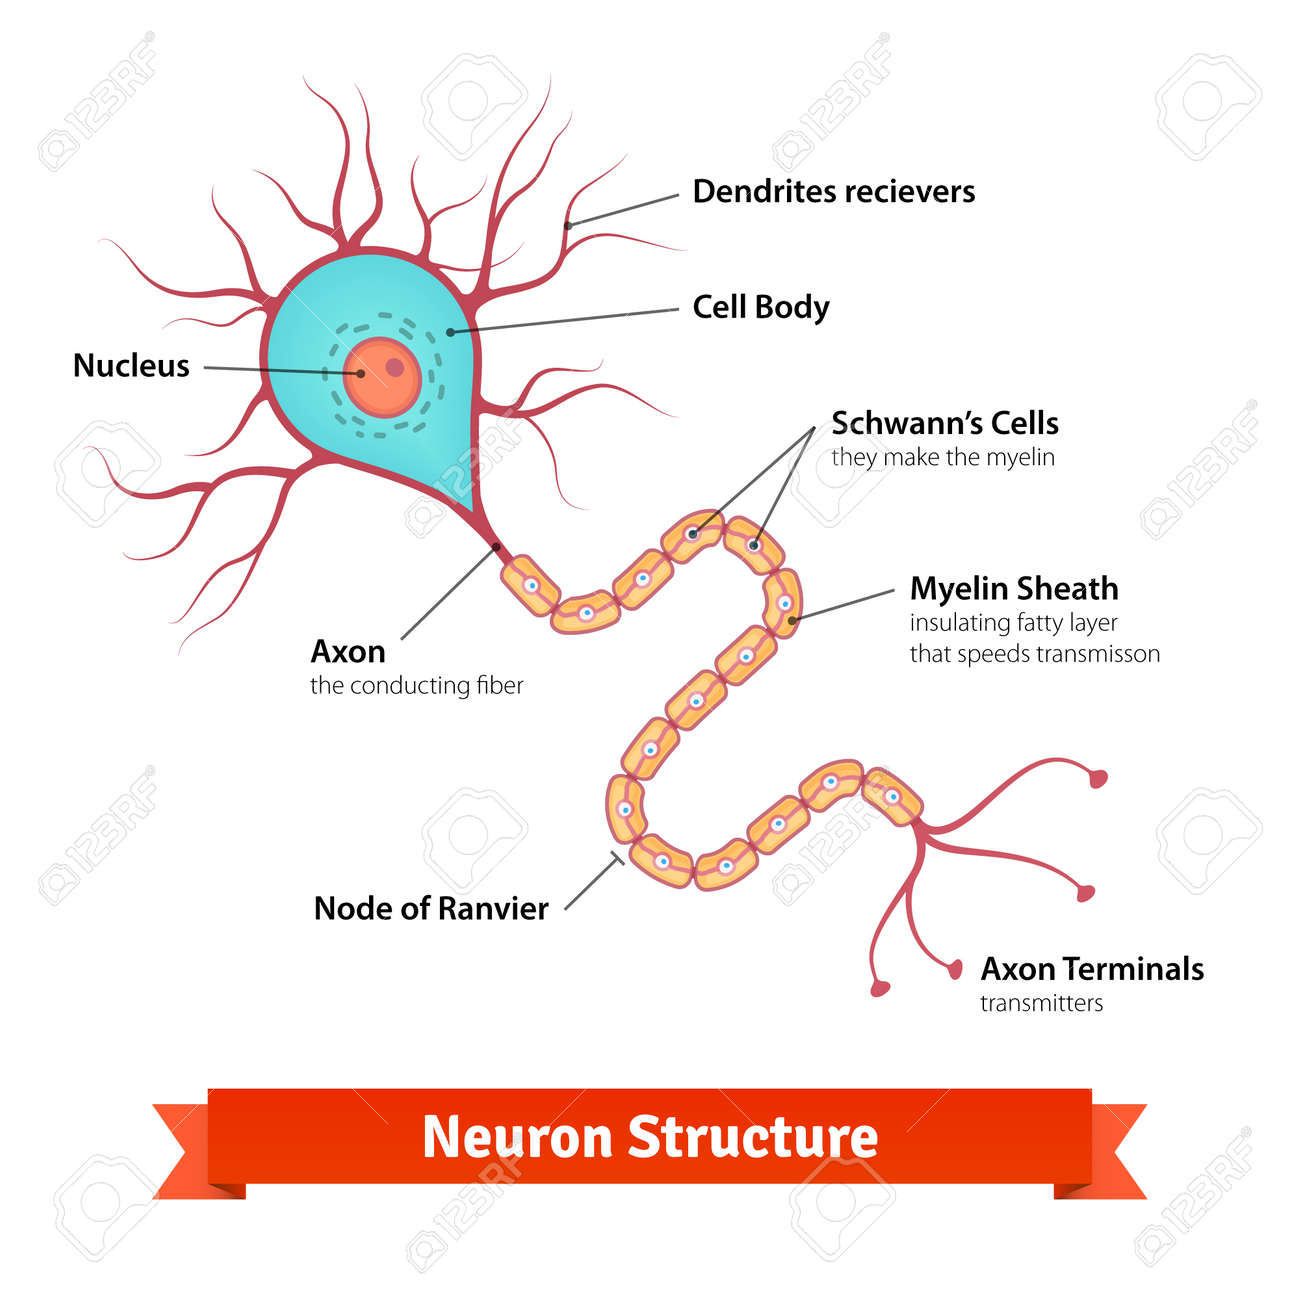 hight resolution of brain neuron cell diagram vector colorful illustration stock vector 49850027